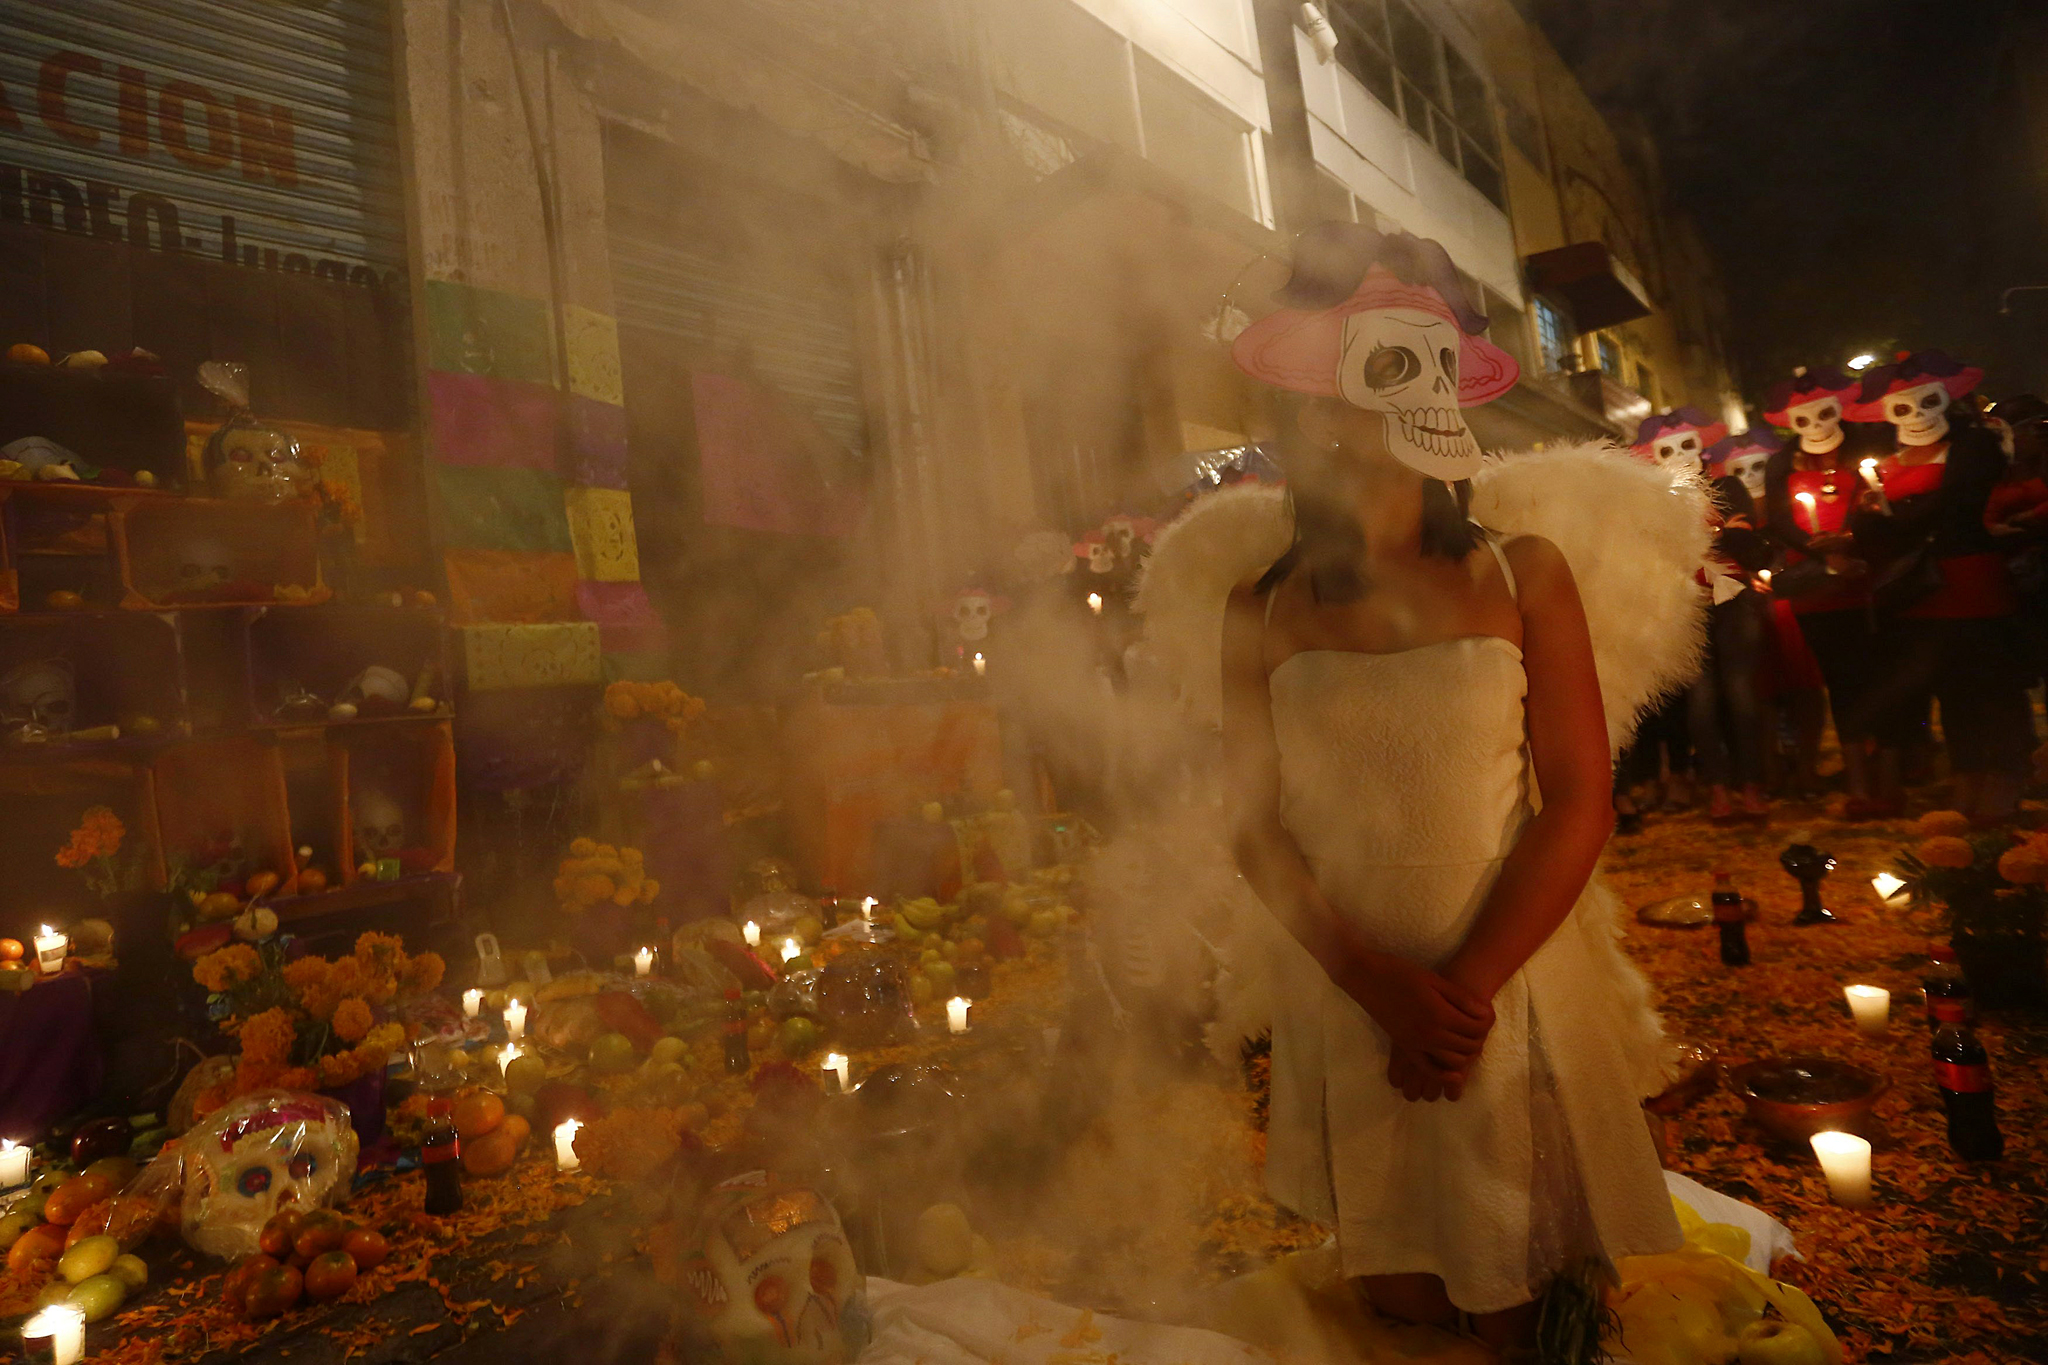 Sex workers wear skeleton masks as they make an offering during a procession to remember their deceased colleagues in Mexico City...Sex workers wear skeleton masks, a traditional Mexican symbol representing the Day of the Dead, as they make an offering during a procession to remember their deceased colleagues, especially those who were violently murdered, in Mexico City October 27, 2014. The annual Day of the Dead is observed on November 1 and 2. REUTERS/Edgard Garrido (MEXICO - Tags: RELIGION SOCIETY)